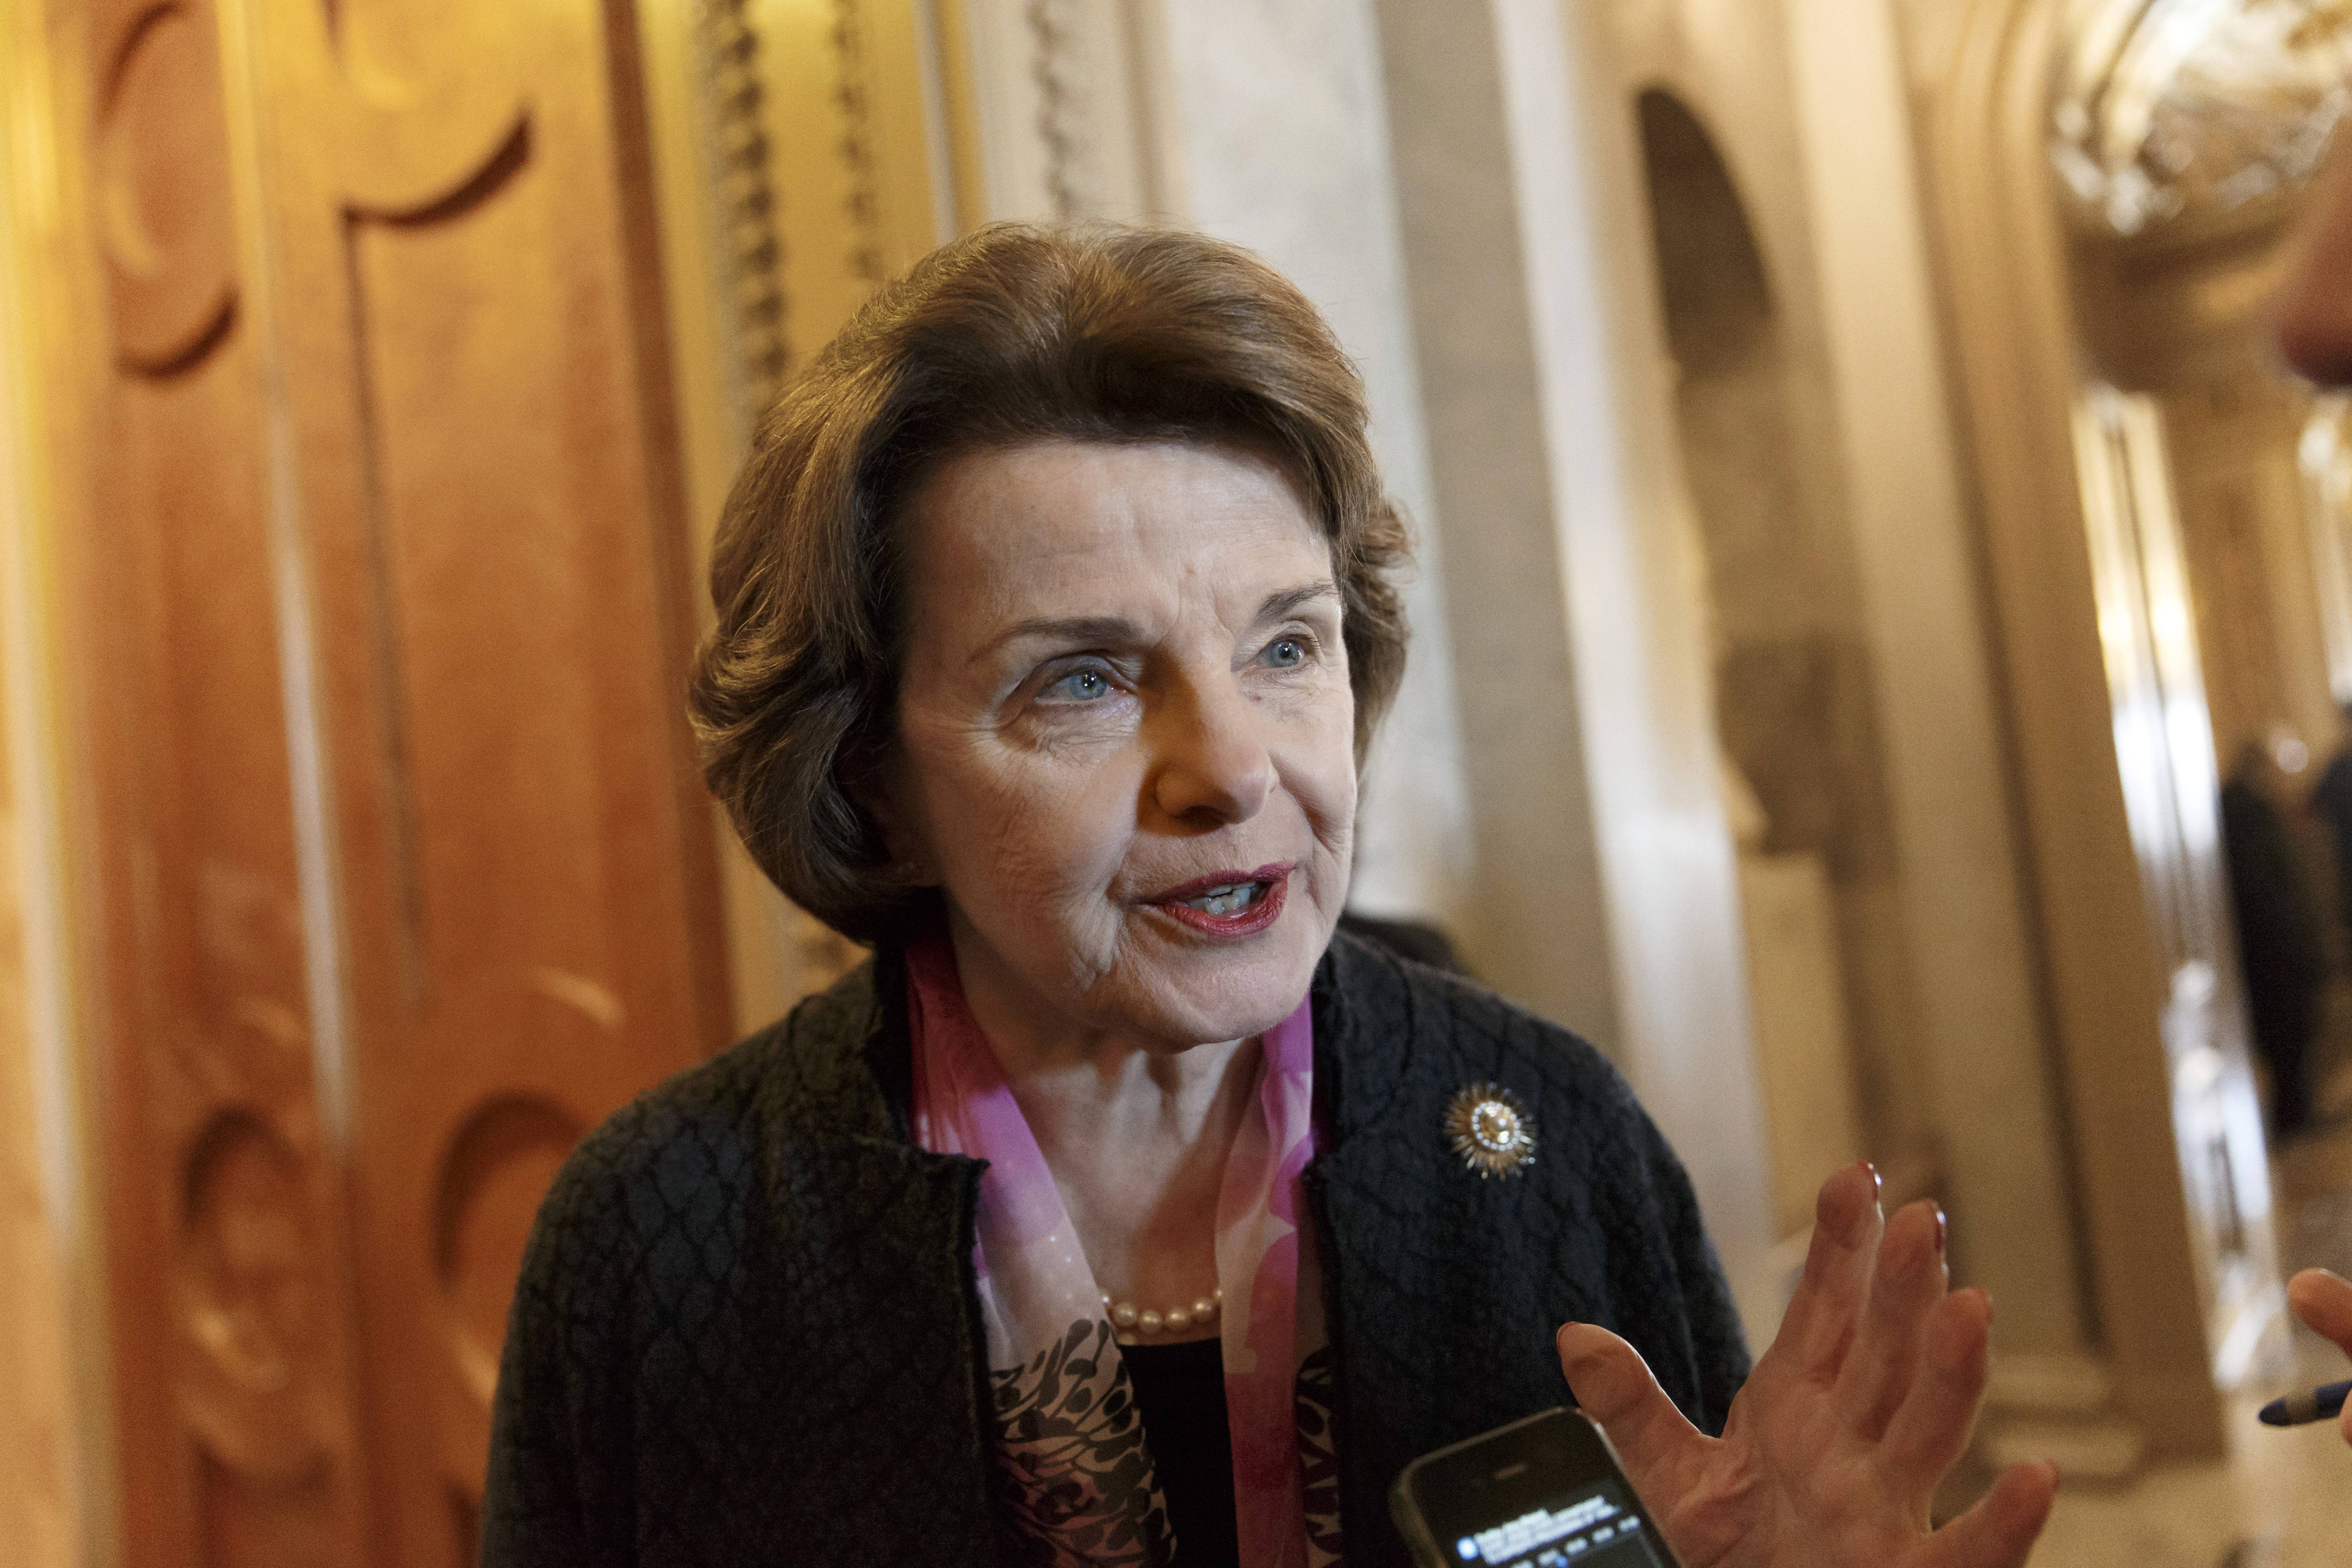 Senate Intelligence Committee Chair Sen. Dianne Feinstein and the rest of the committee voted 11-3 on Thursday to release parts of a classified report that harshly criticizes CIA terror interrogations after 9/11.